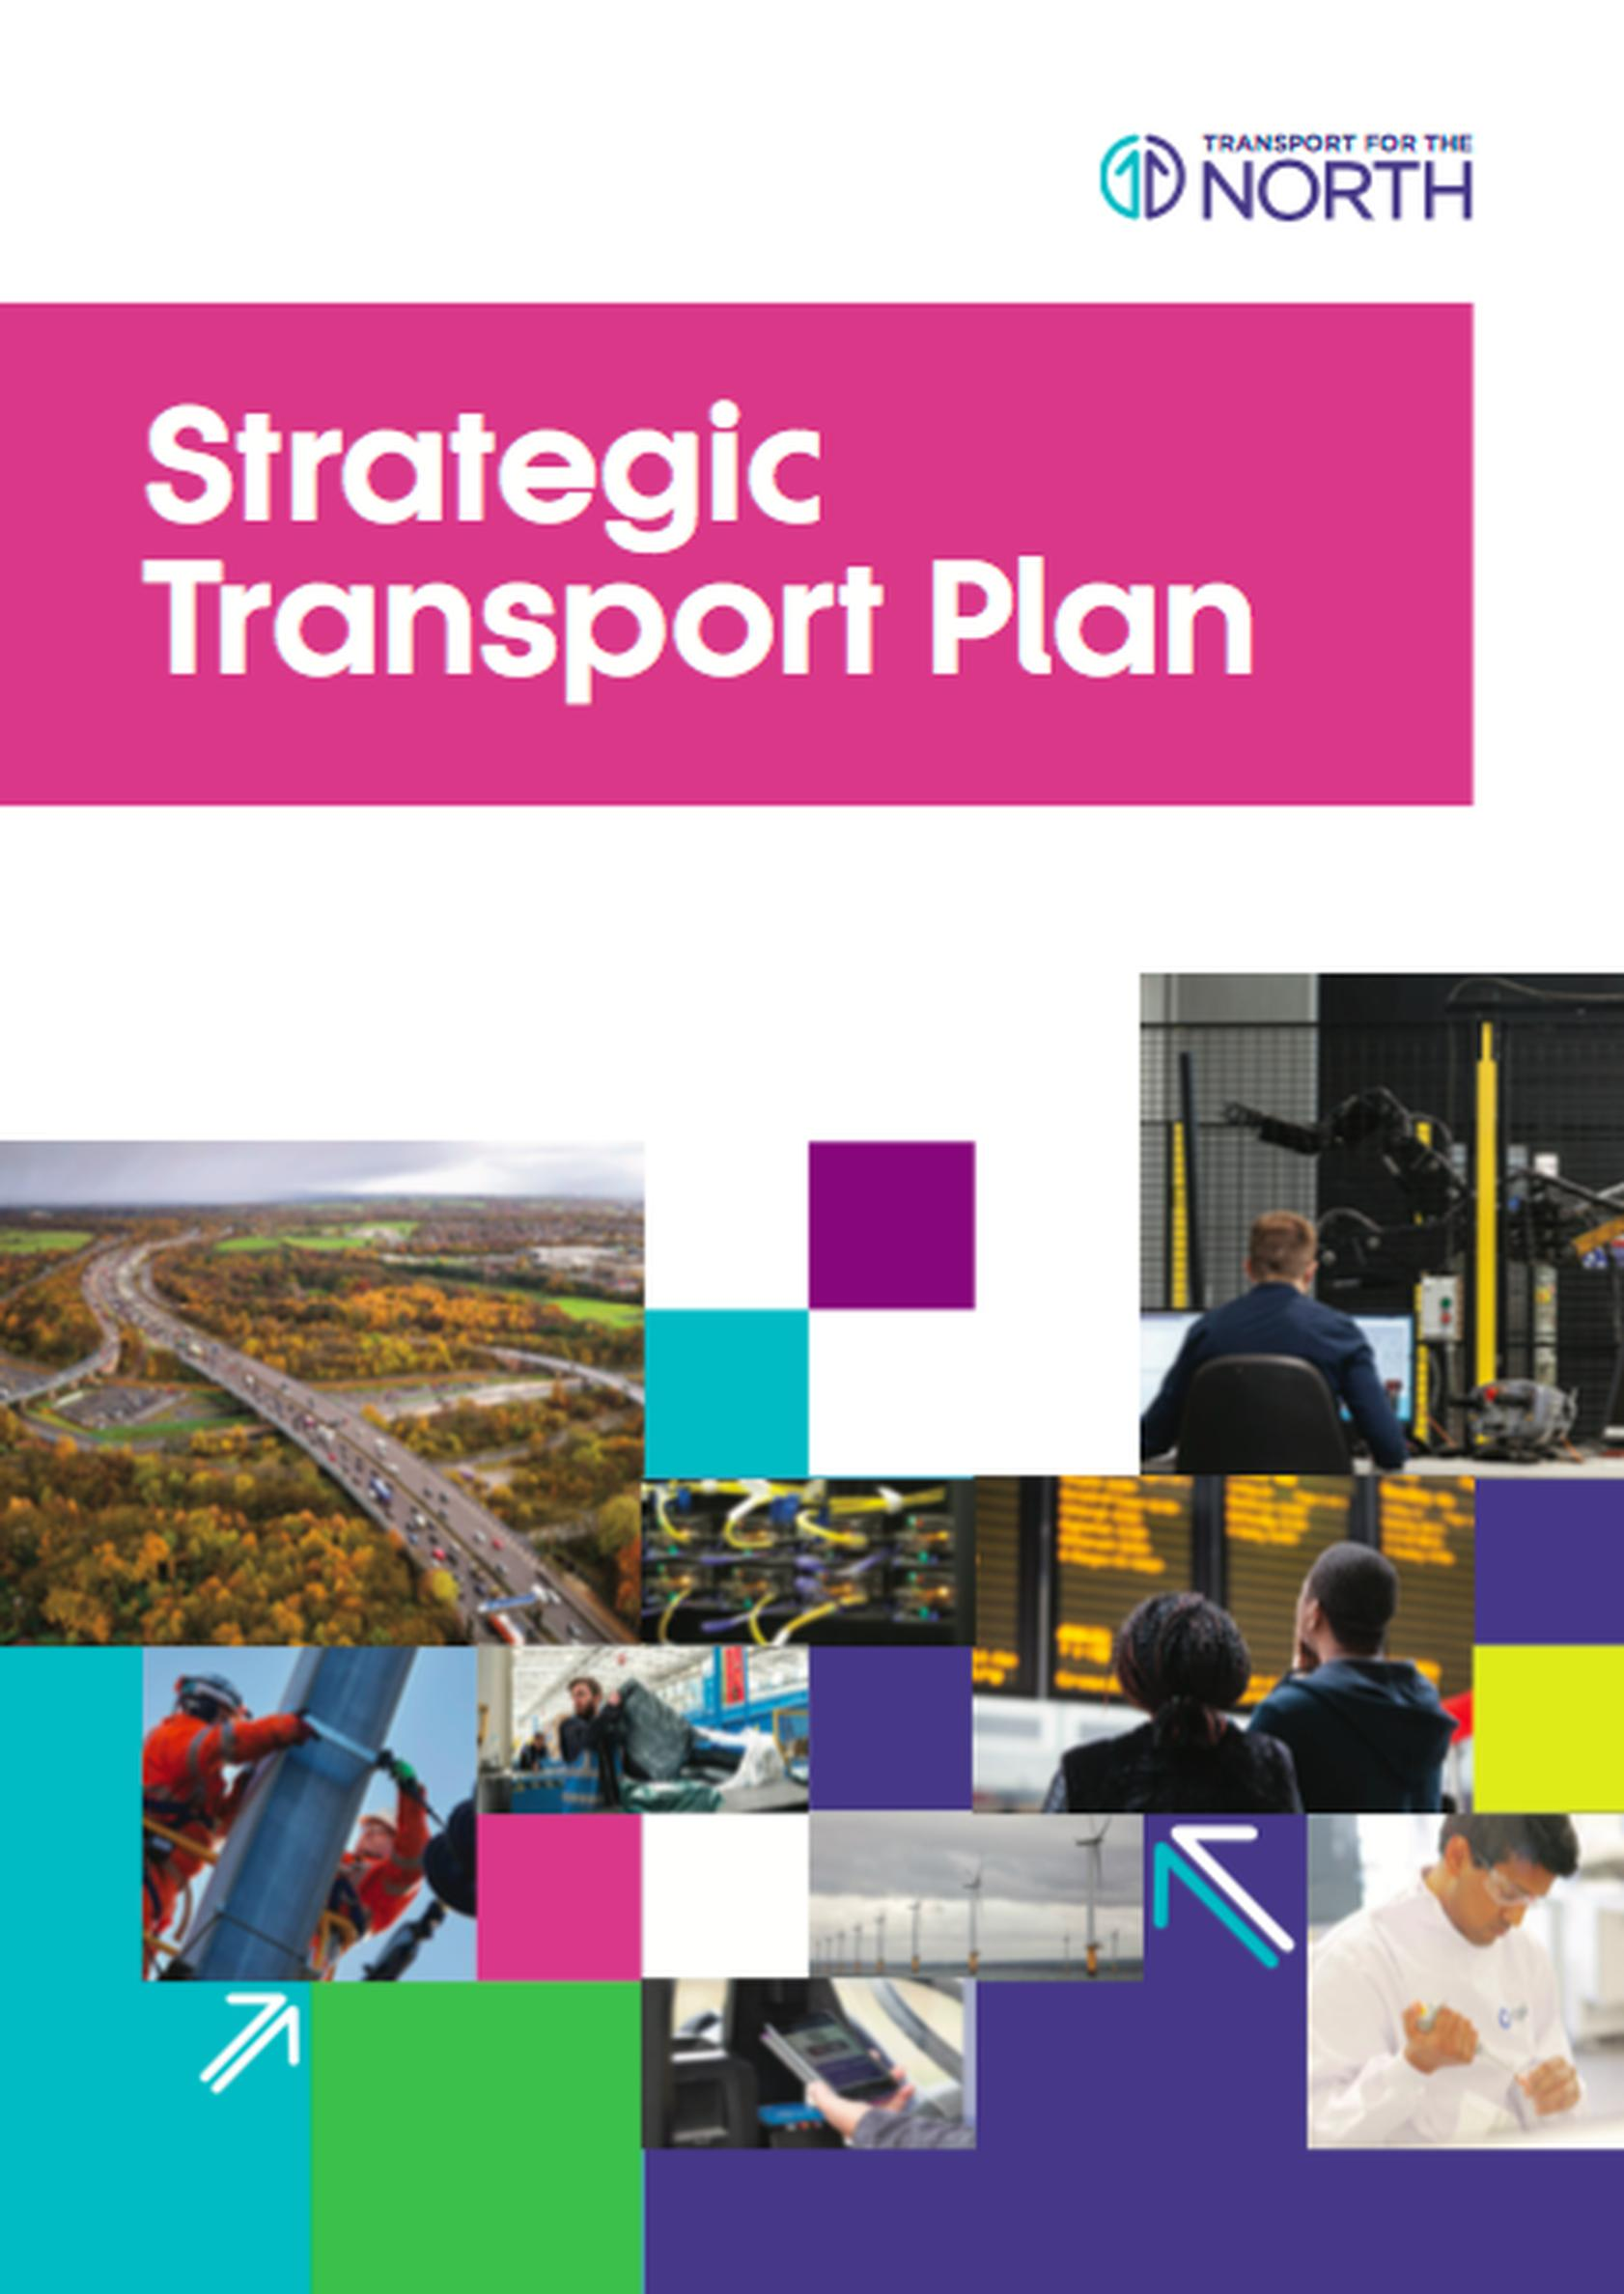 The existing plan was published in 2019